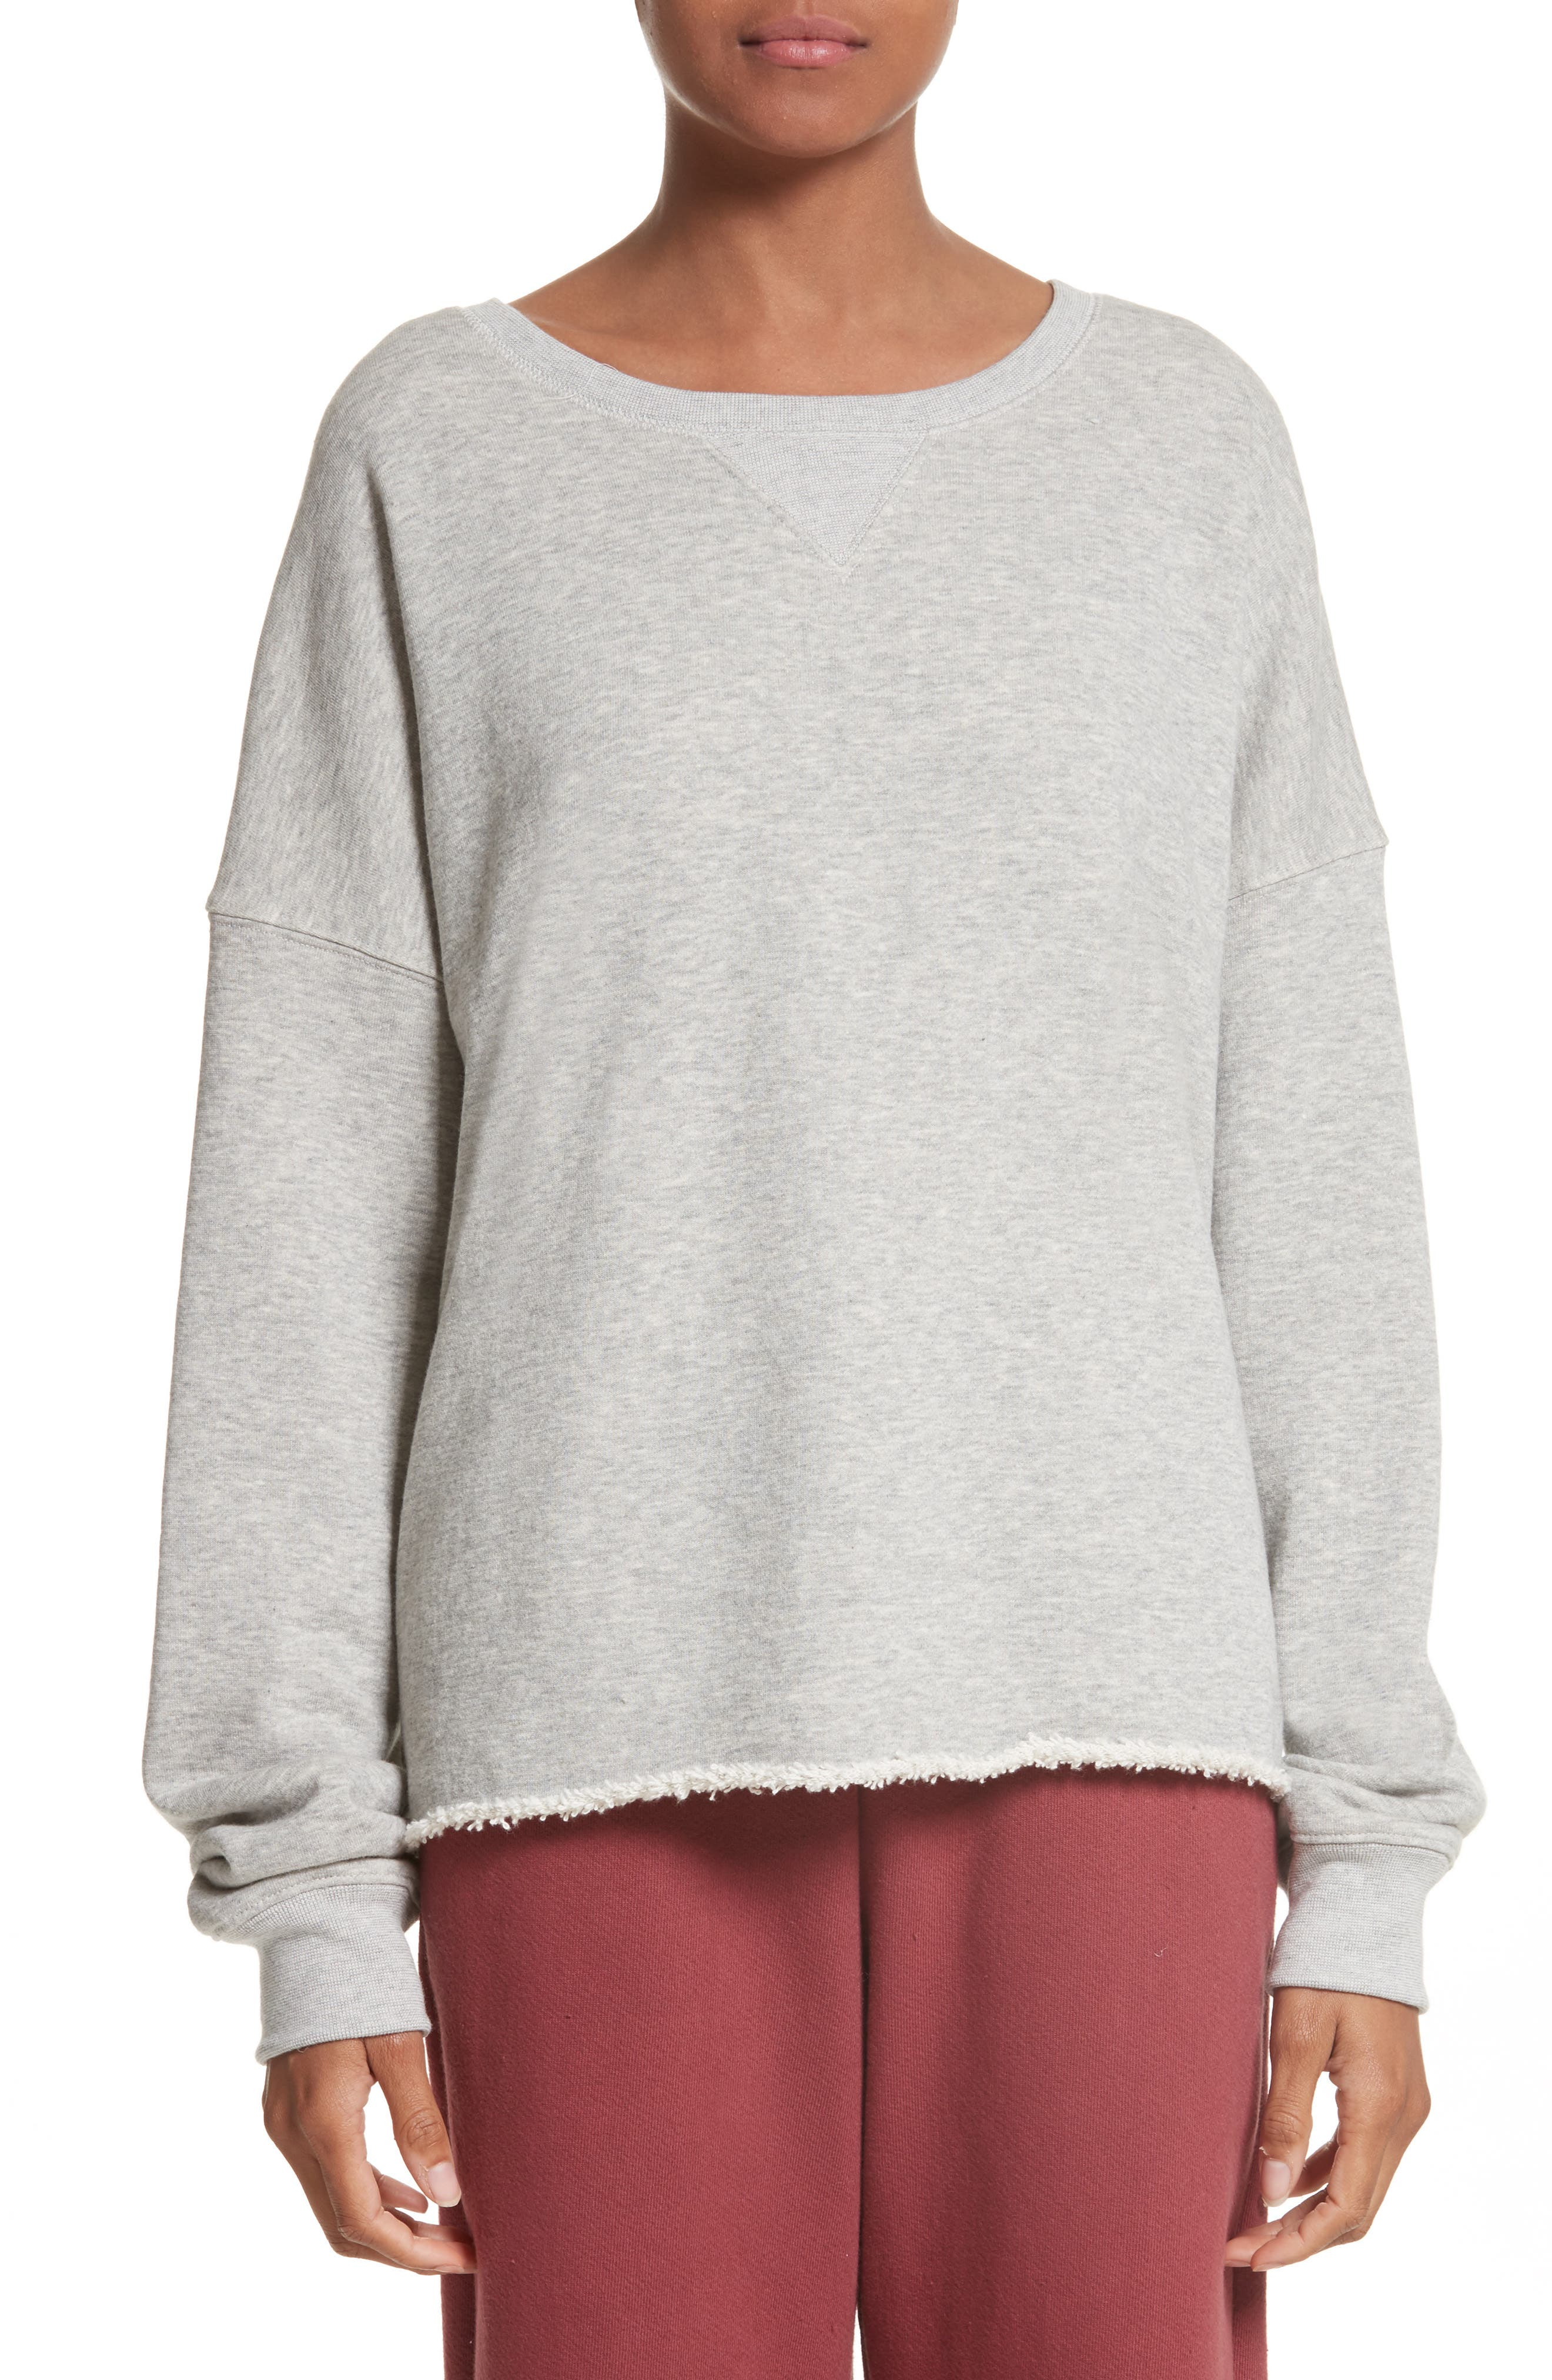 Brushed Terry Sweatshirt,                             Main thumbnail 1, color,                             020